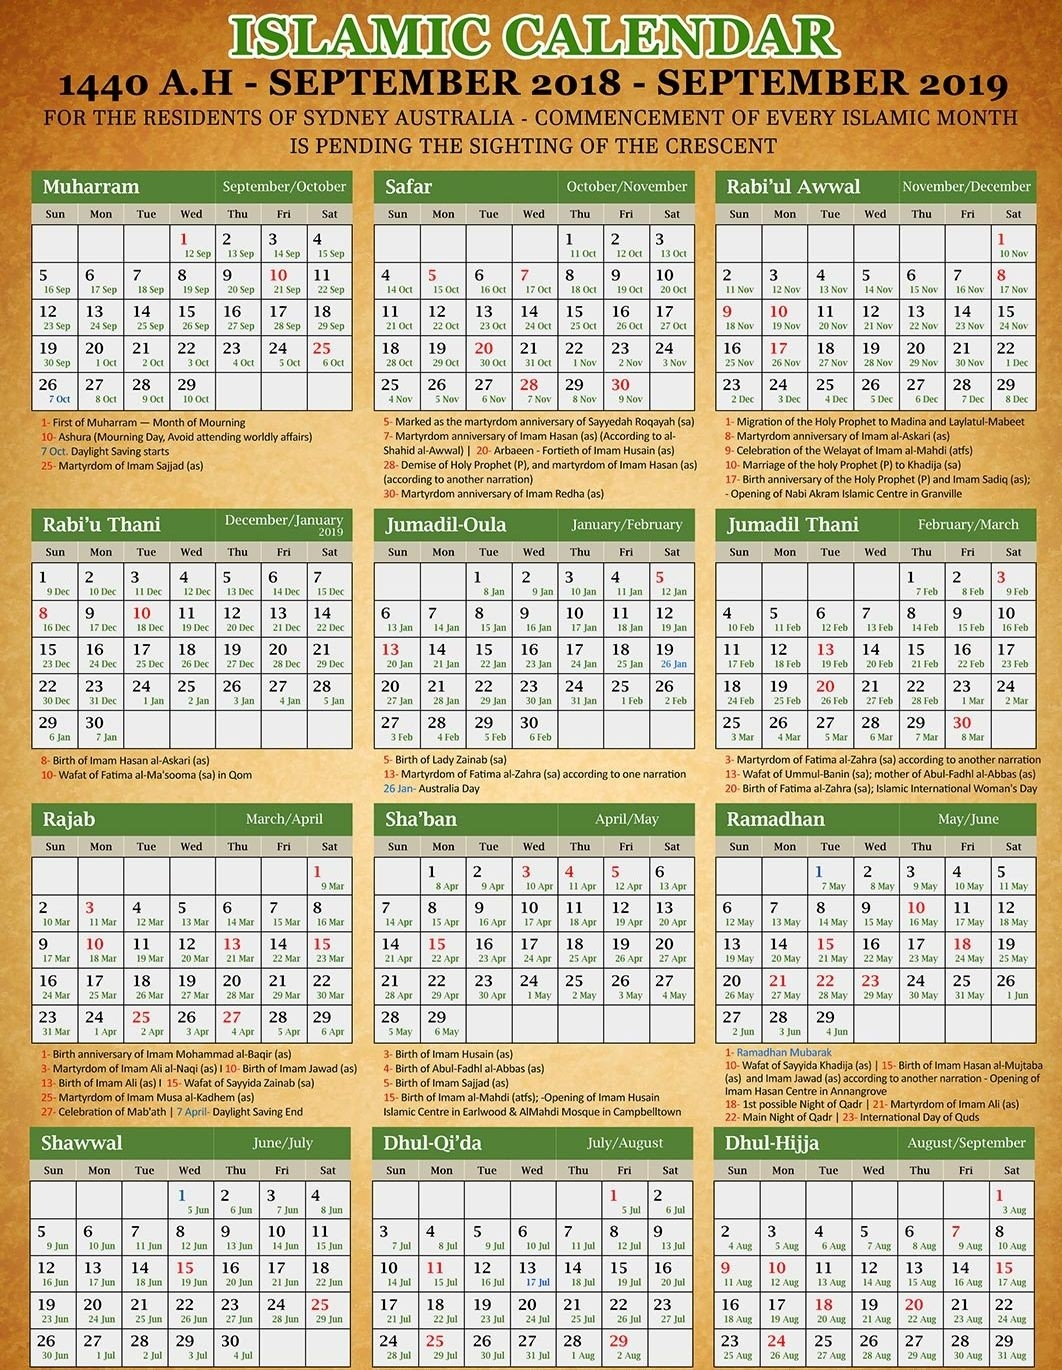 Islamic Calendar 2019/20 - Hijri Calendar 1441 [Pdf Download]  Shia Islamic Calendar